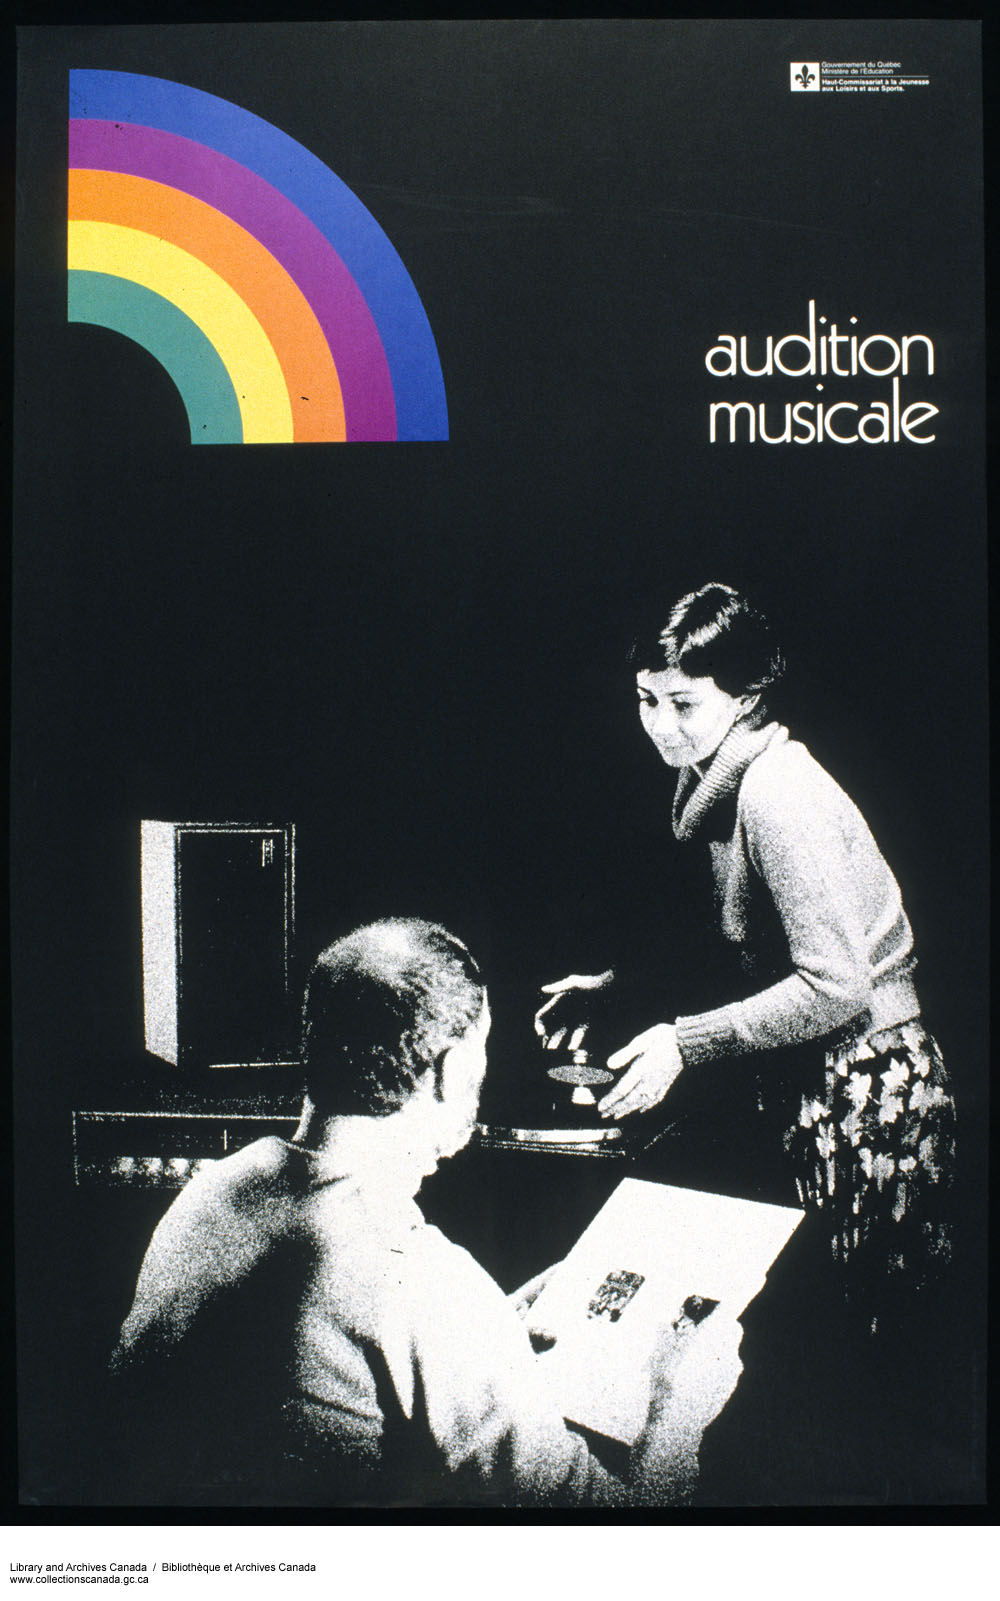 Audition musicale :  advertisement poster for government of Quebec. (item 1)